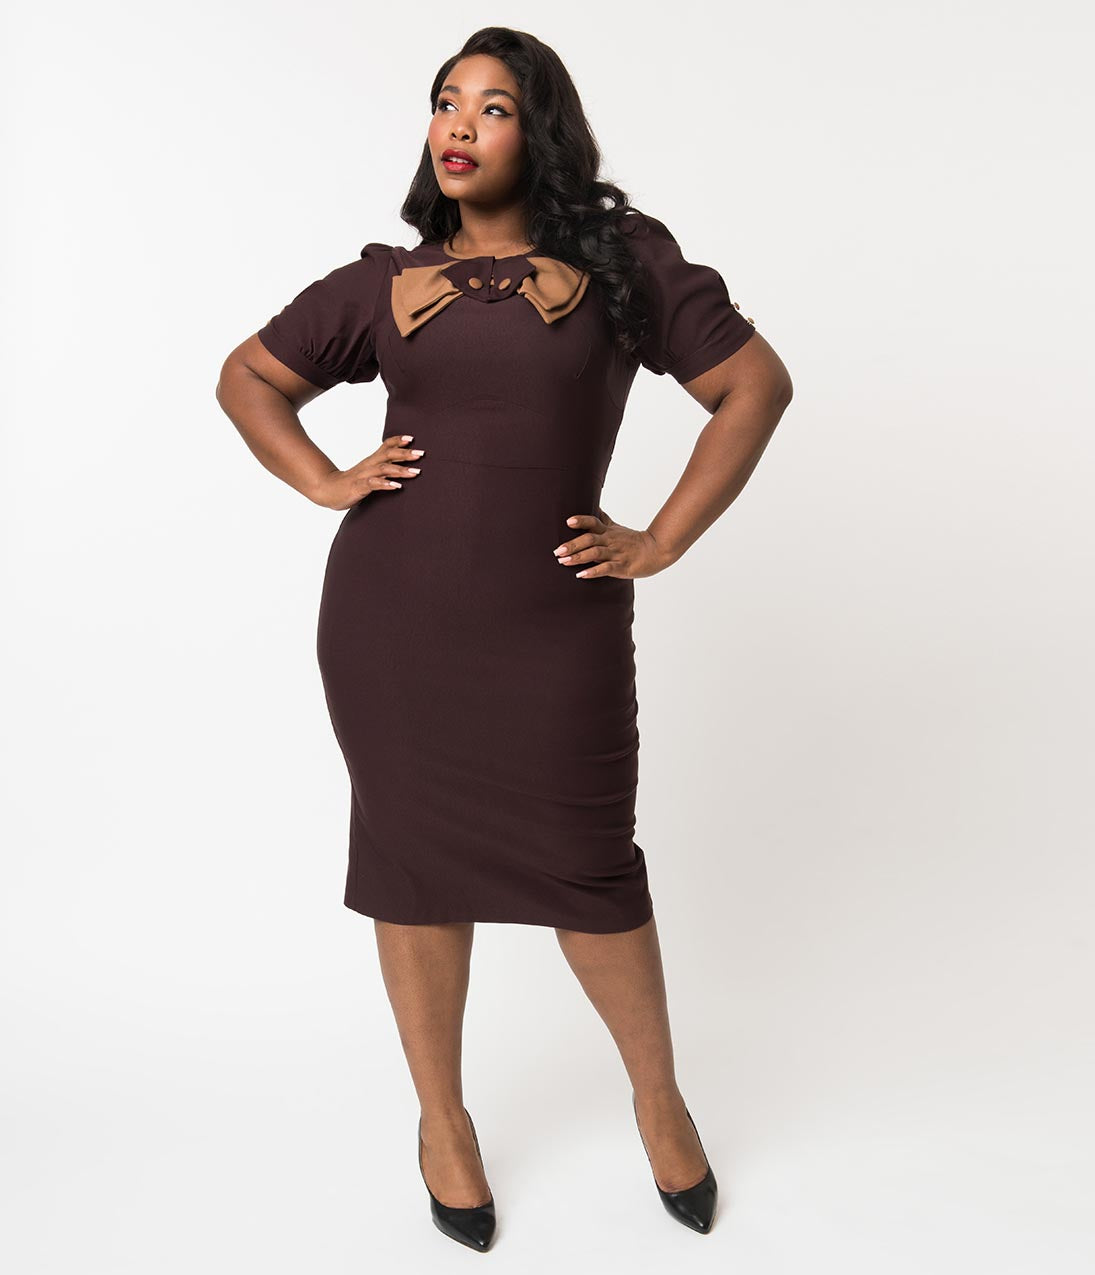 1940s Plus Size Dresses | Swing Dress, Tea Dress Stop Staring Plus Size 1940S Style Chocolate Brown Short Sleeve Penny Wiggle Dress $99.00 AT vintagedancer.com